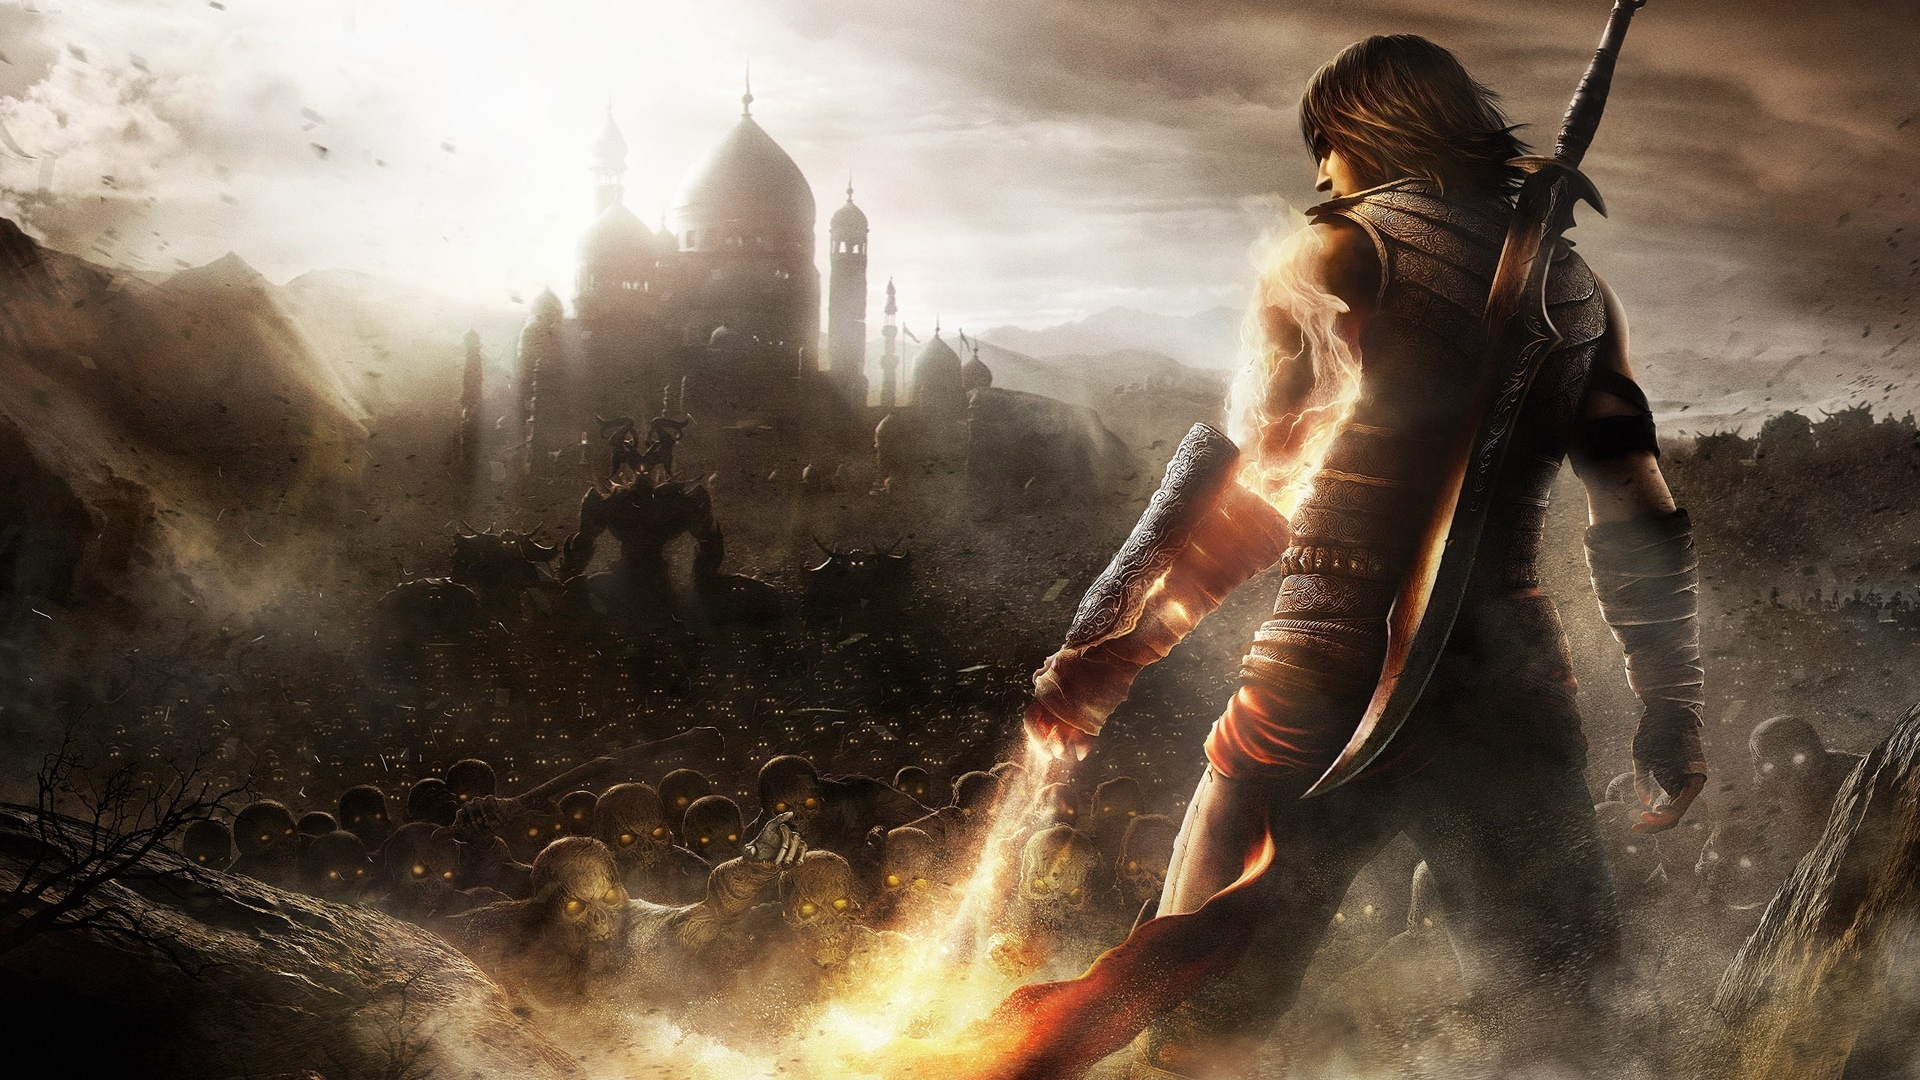 Cool Backgrounds Hd Gaming